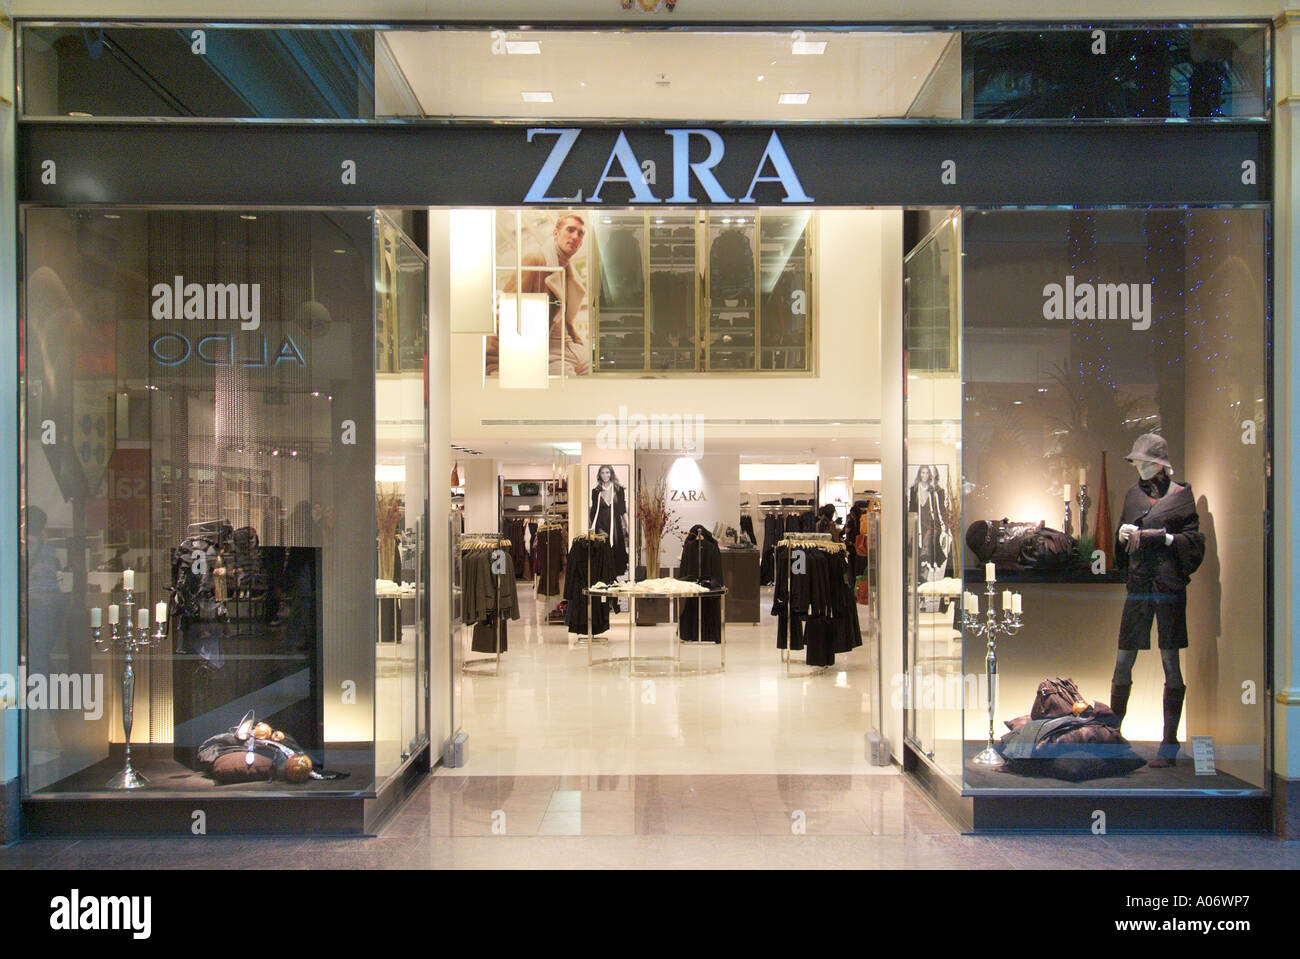 zara shop store trafford centre uk united kingdom england europe gb stock photo royalty free. Black Bedroom Furniture Sets. Home Design Ideas